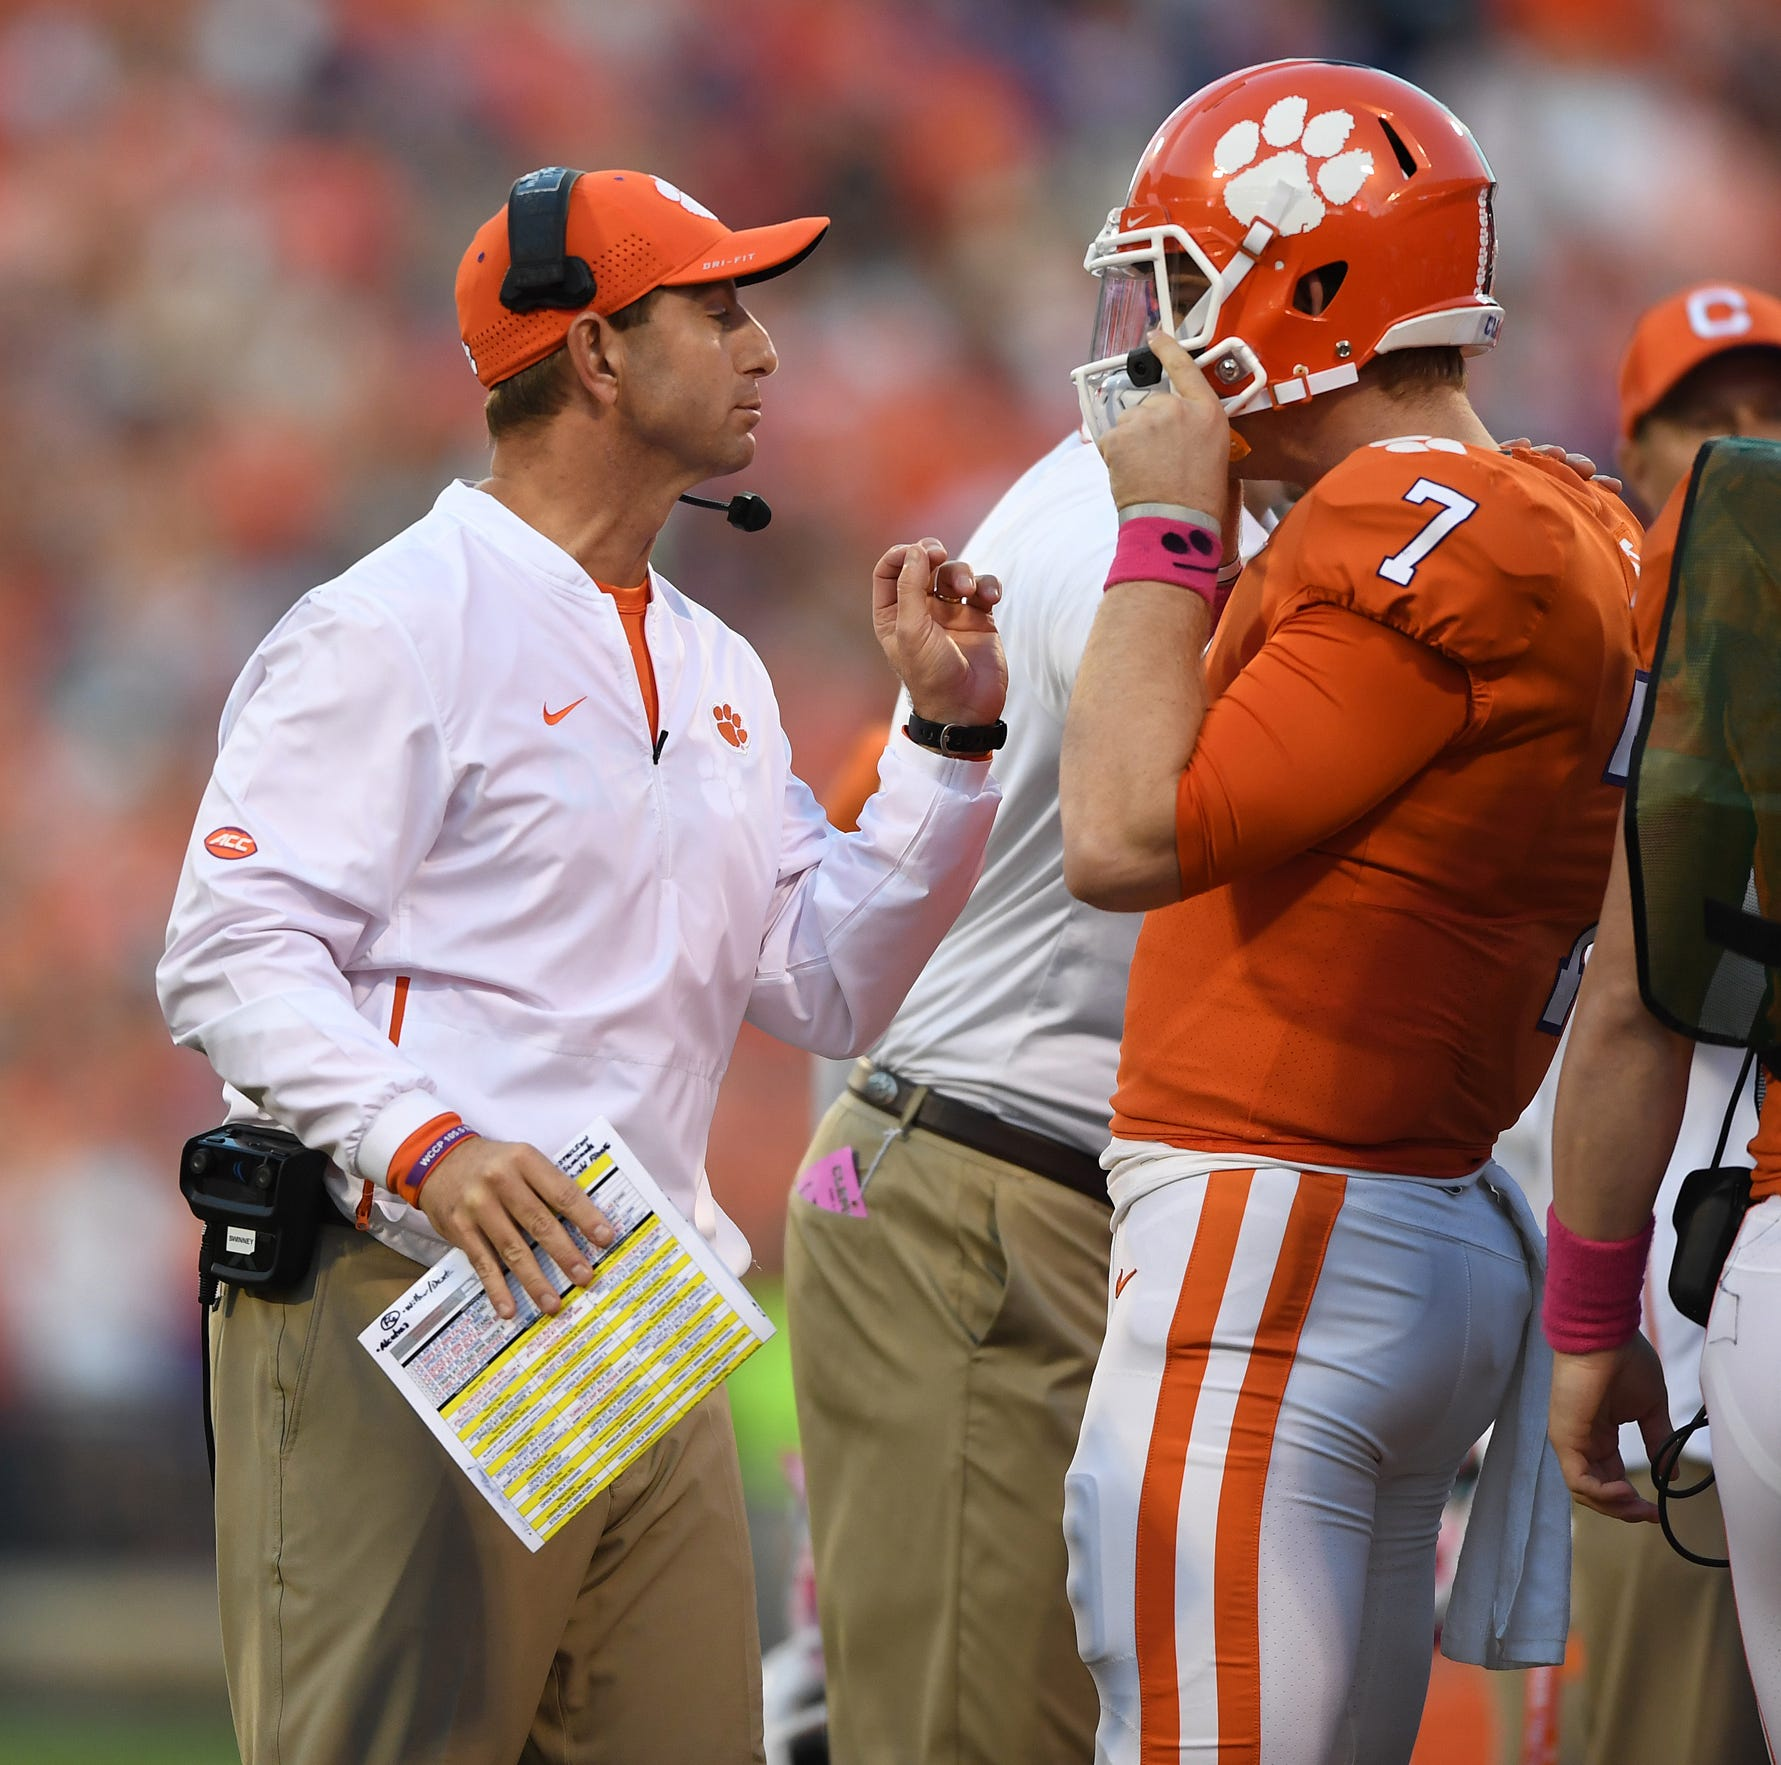 Unbeaten Clemson moves up to No. 2 in college football polls